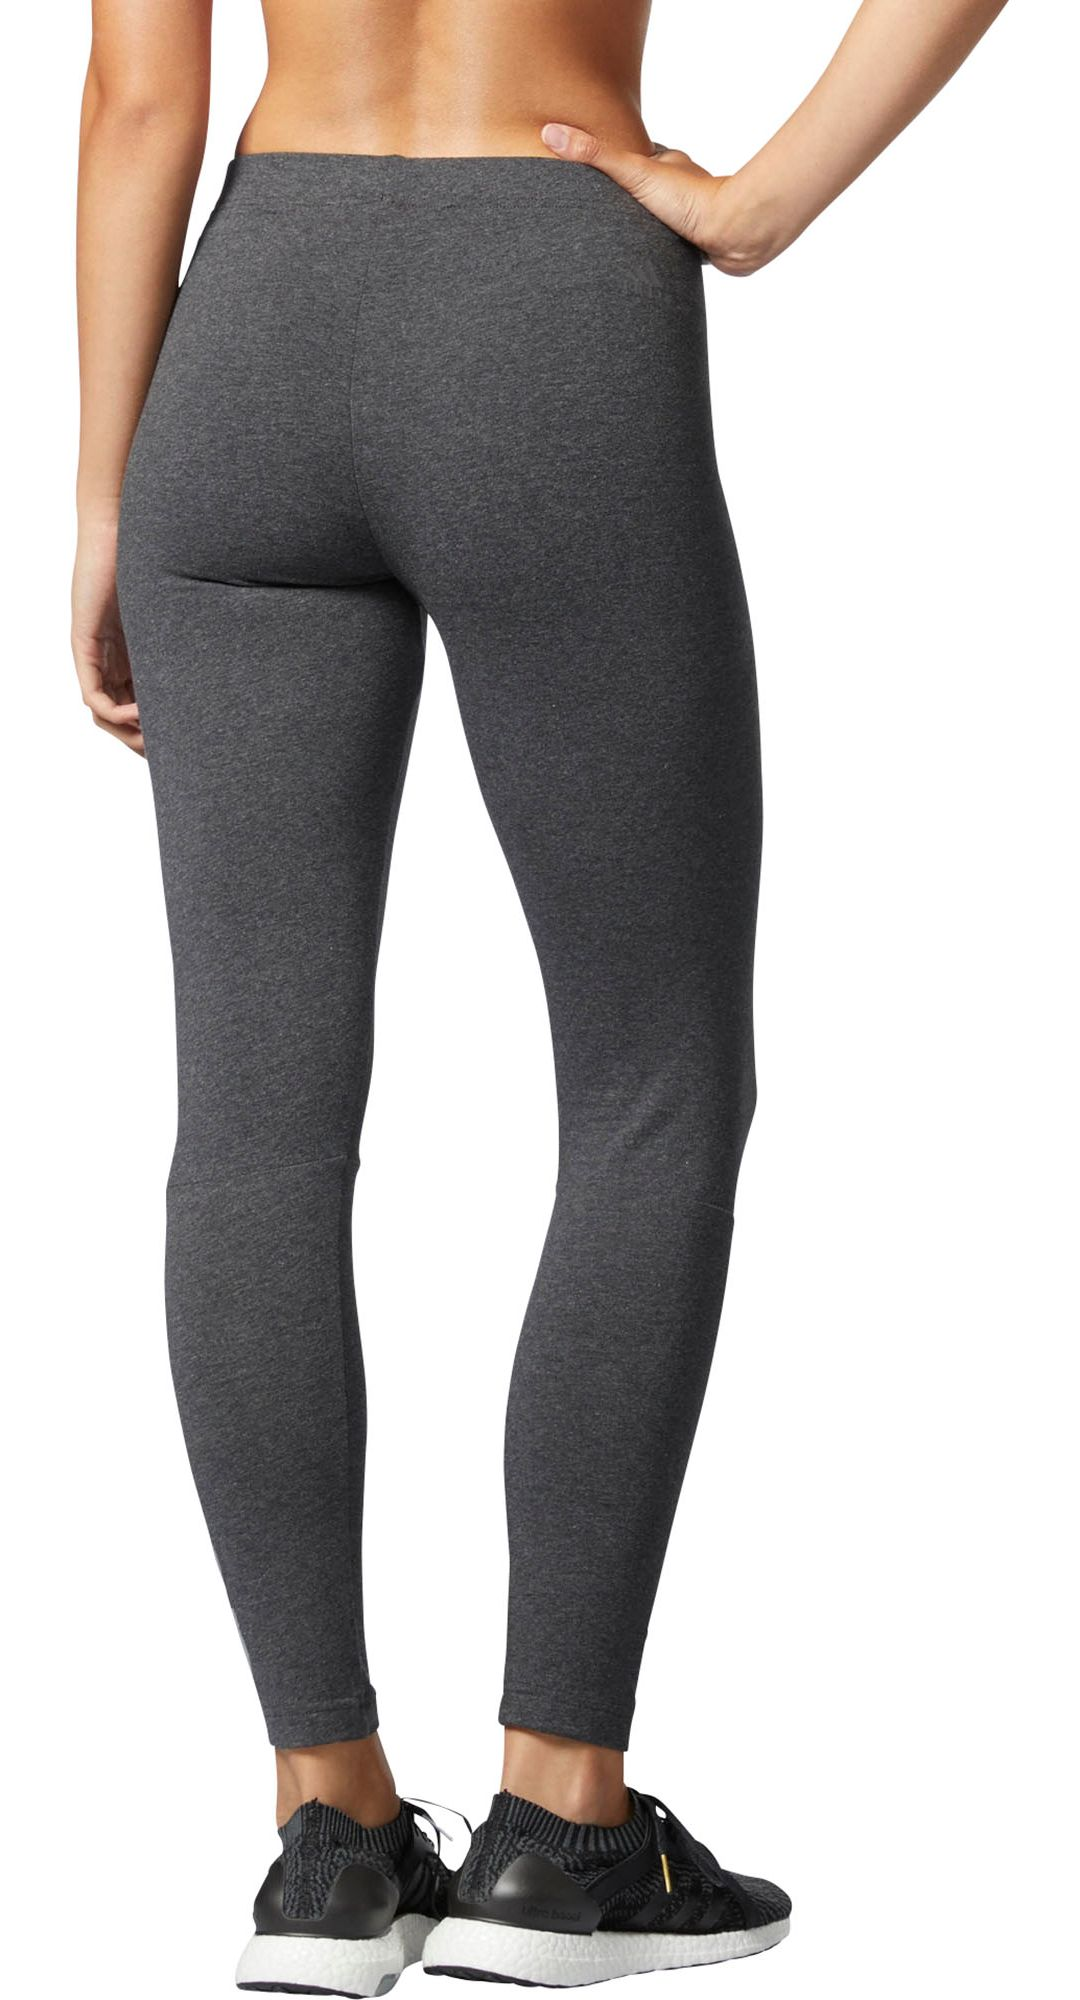 0f0f7196652 adidas Women's Essentials Linear Tights | DICK'S Sporting Goods